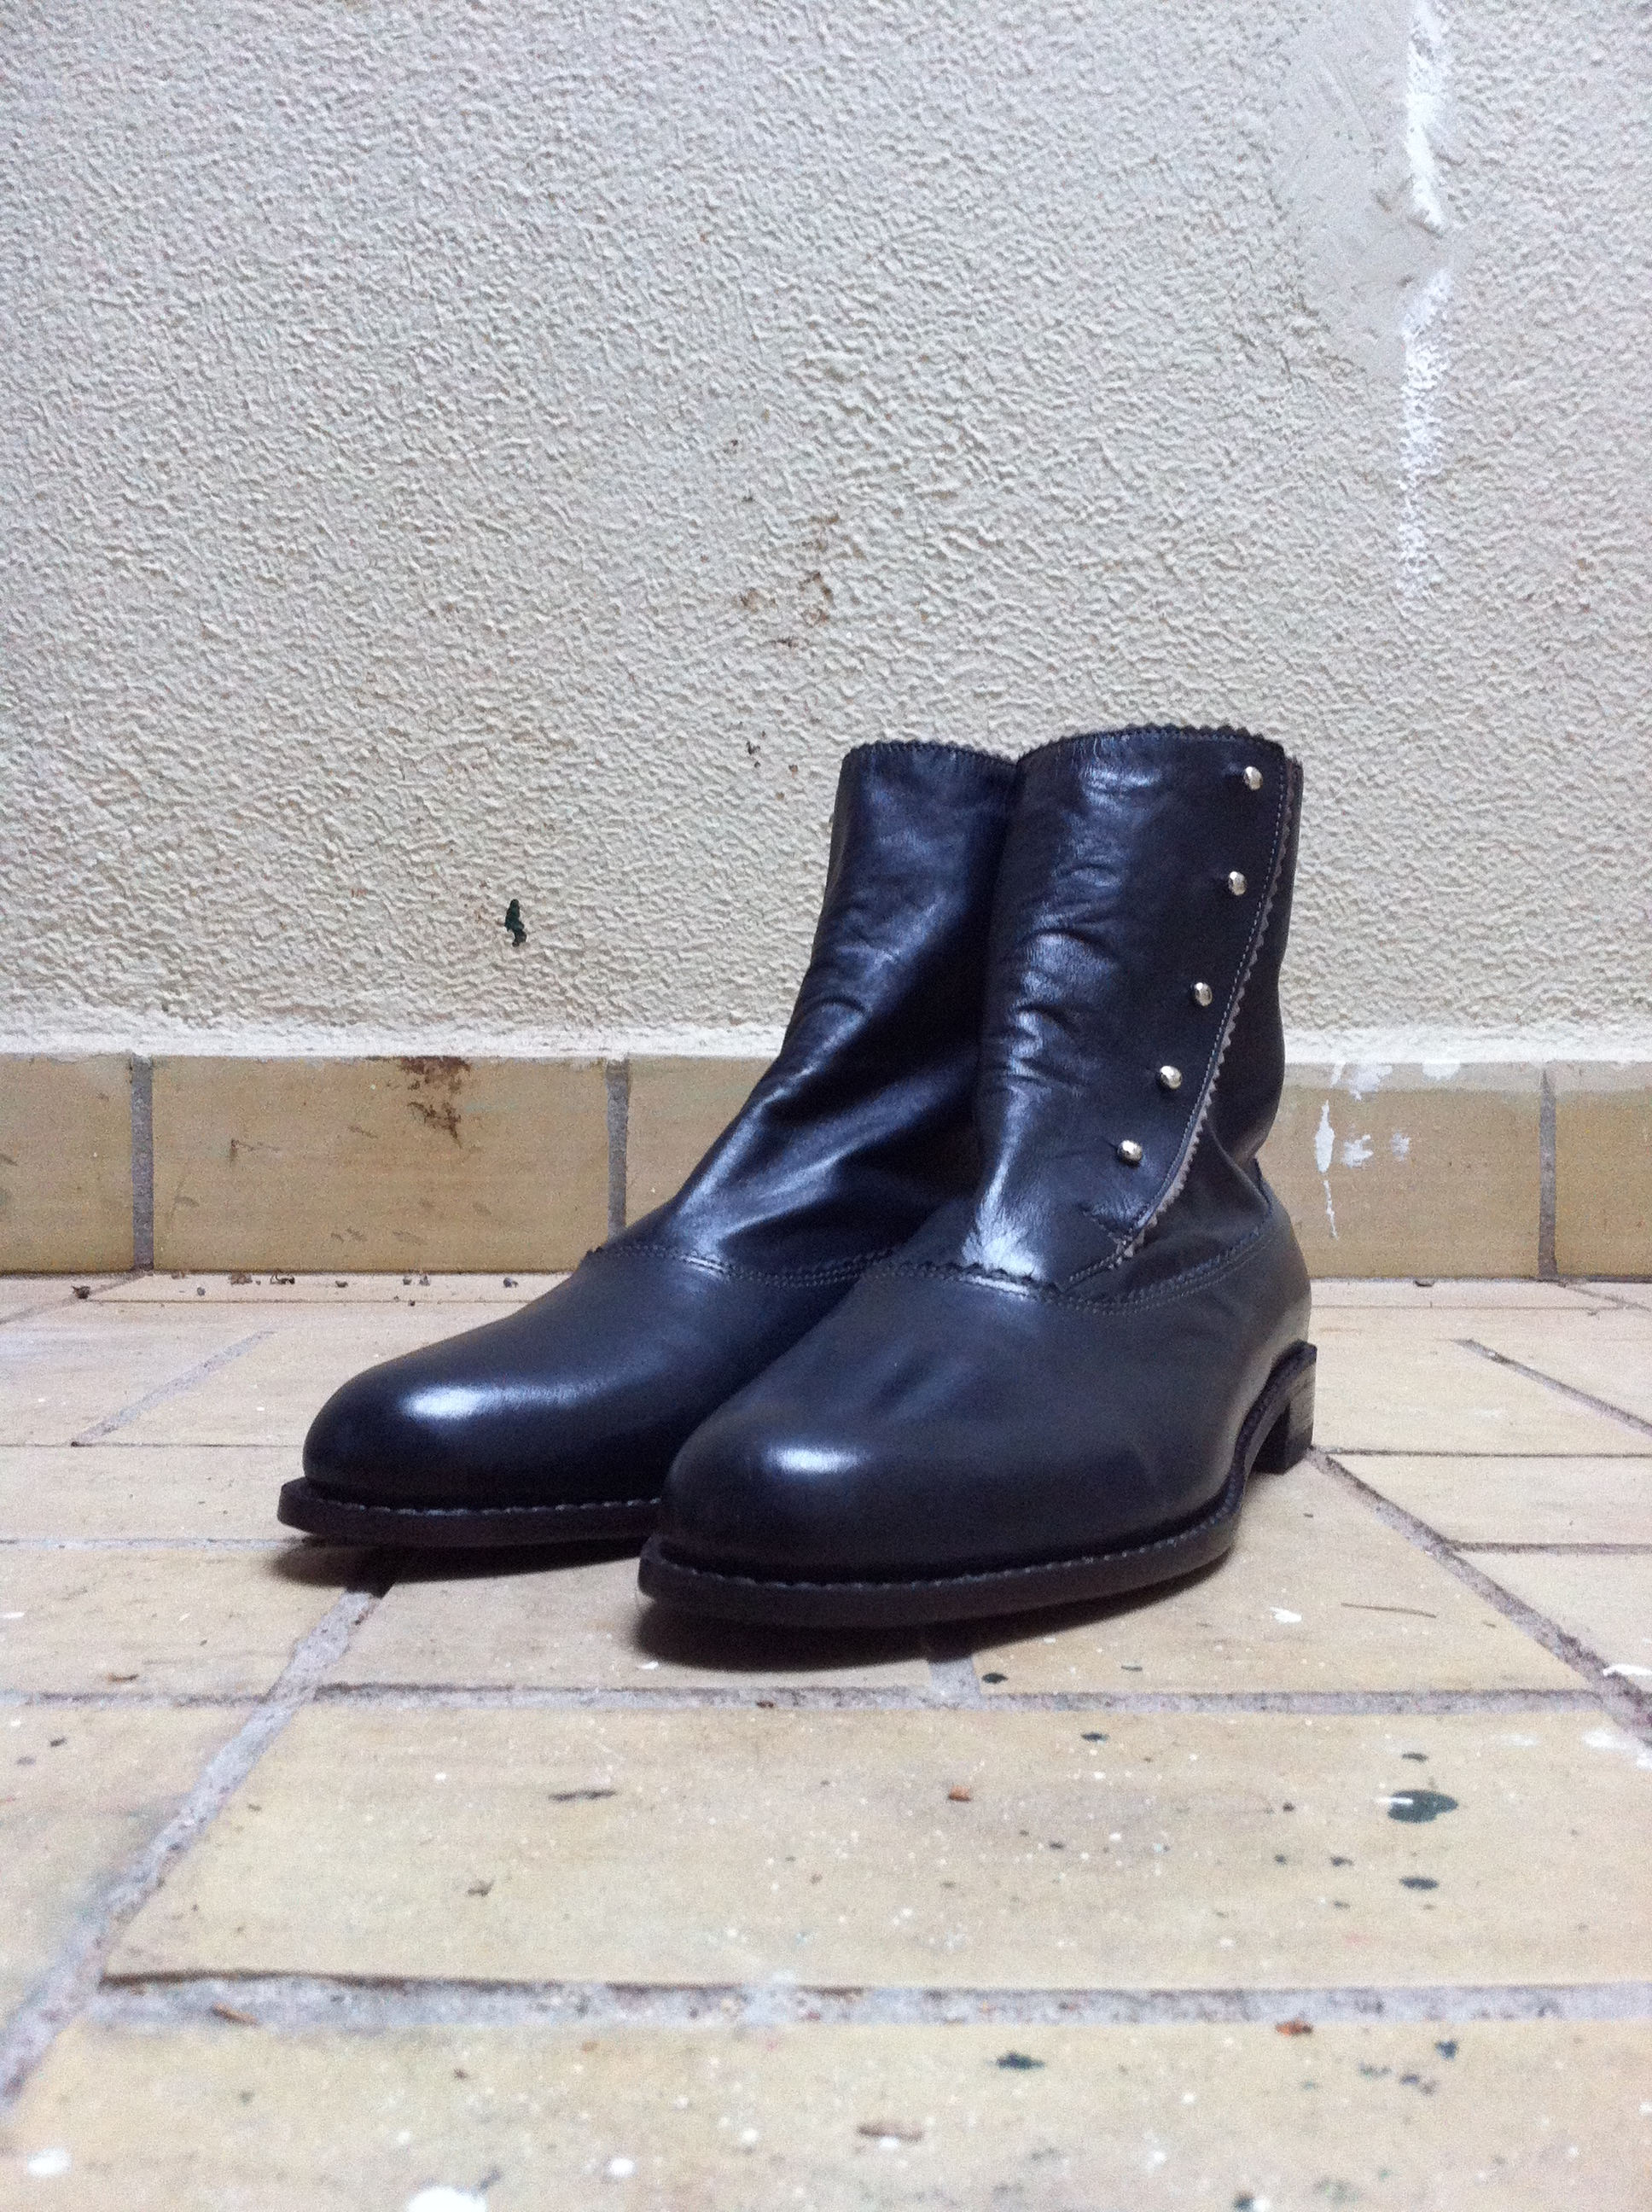 Buttoned Balmoral boots